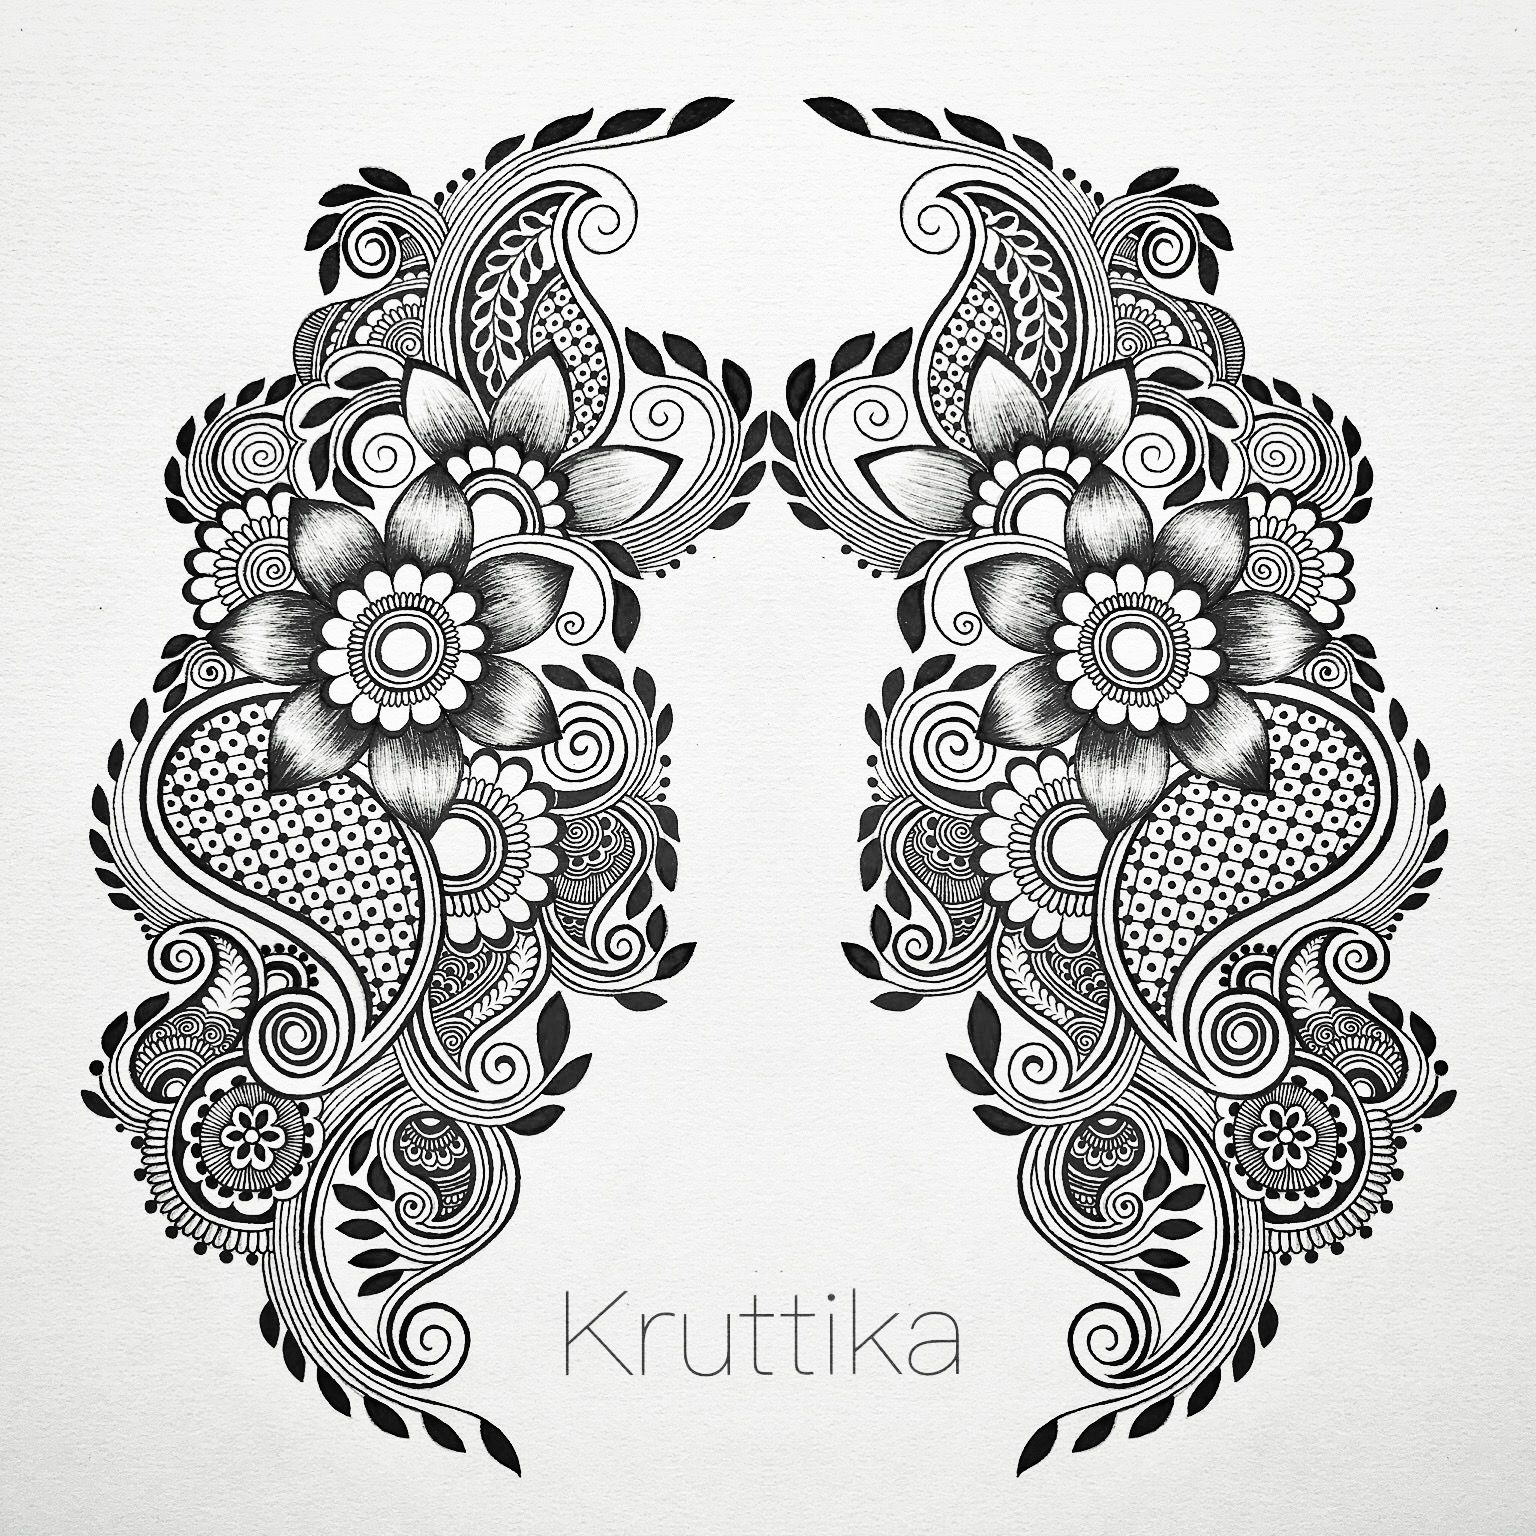 Freehand Symmetrical Designs Design Ideas Hand Drawn Illustrations